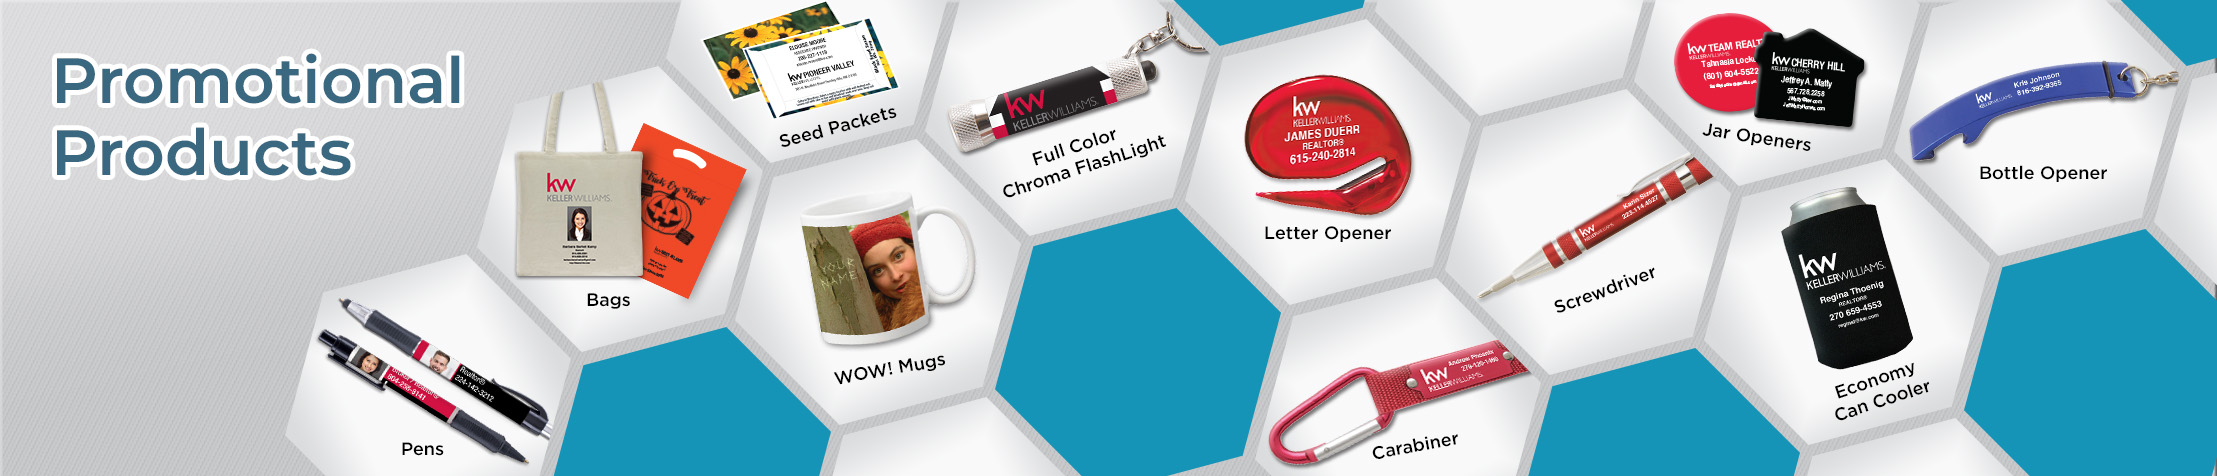 Keller Williams Real Estate Promotional Products - KW approved vendor personalized promotional pens, key chains, tote bags, flashlights, mugs | BestPrintBuy.com